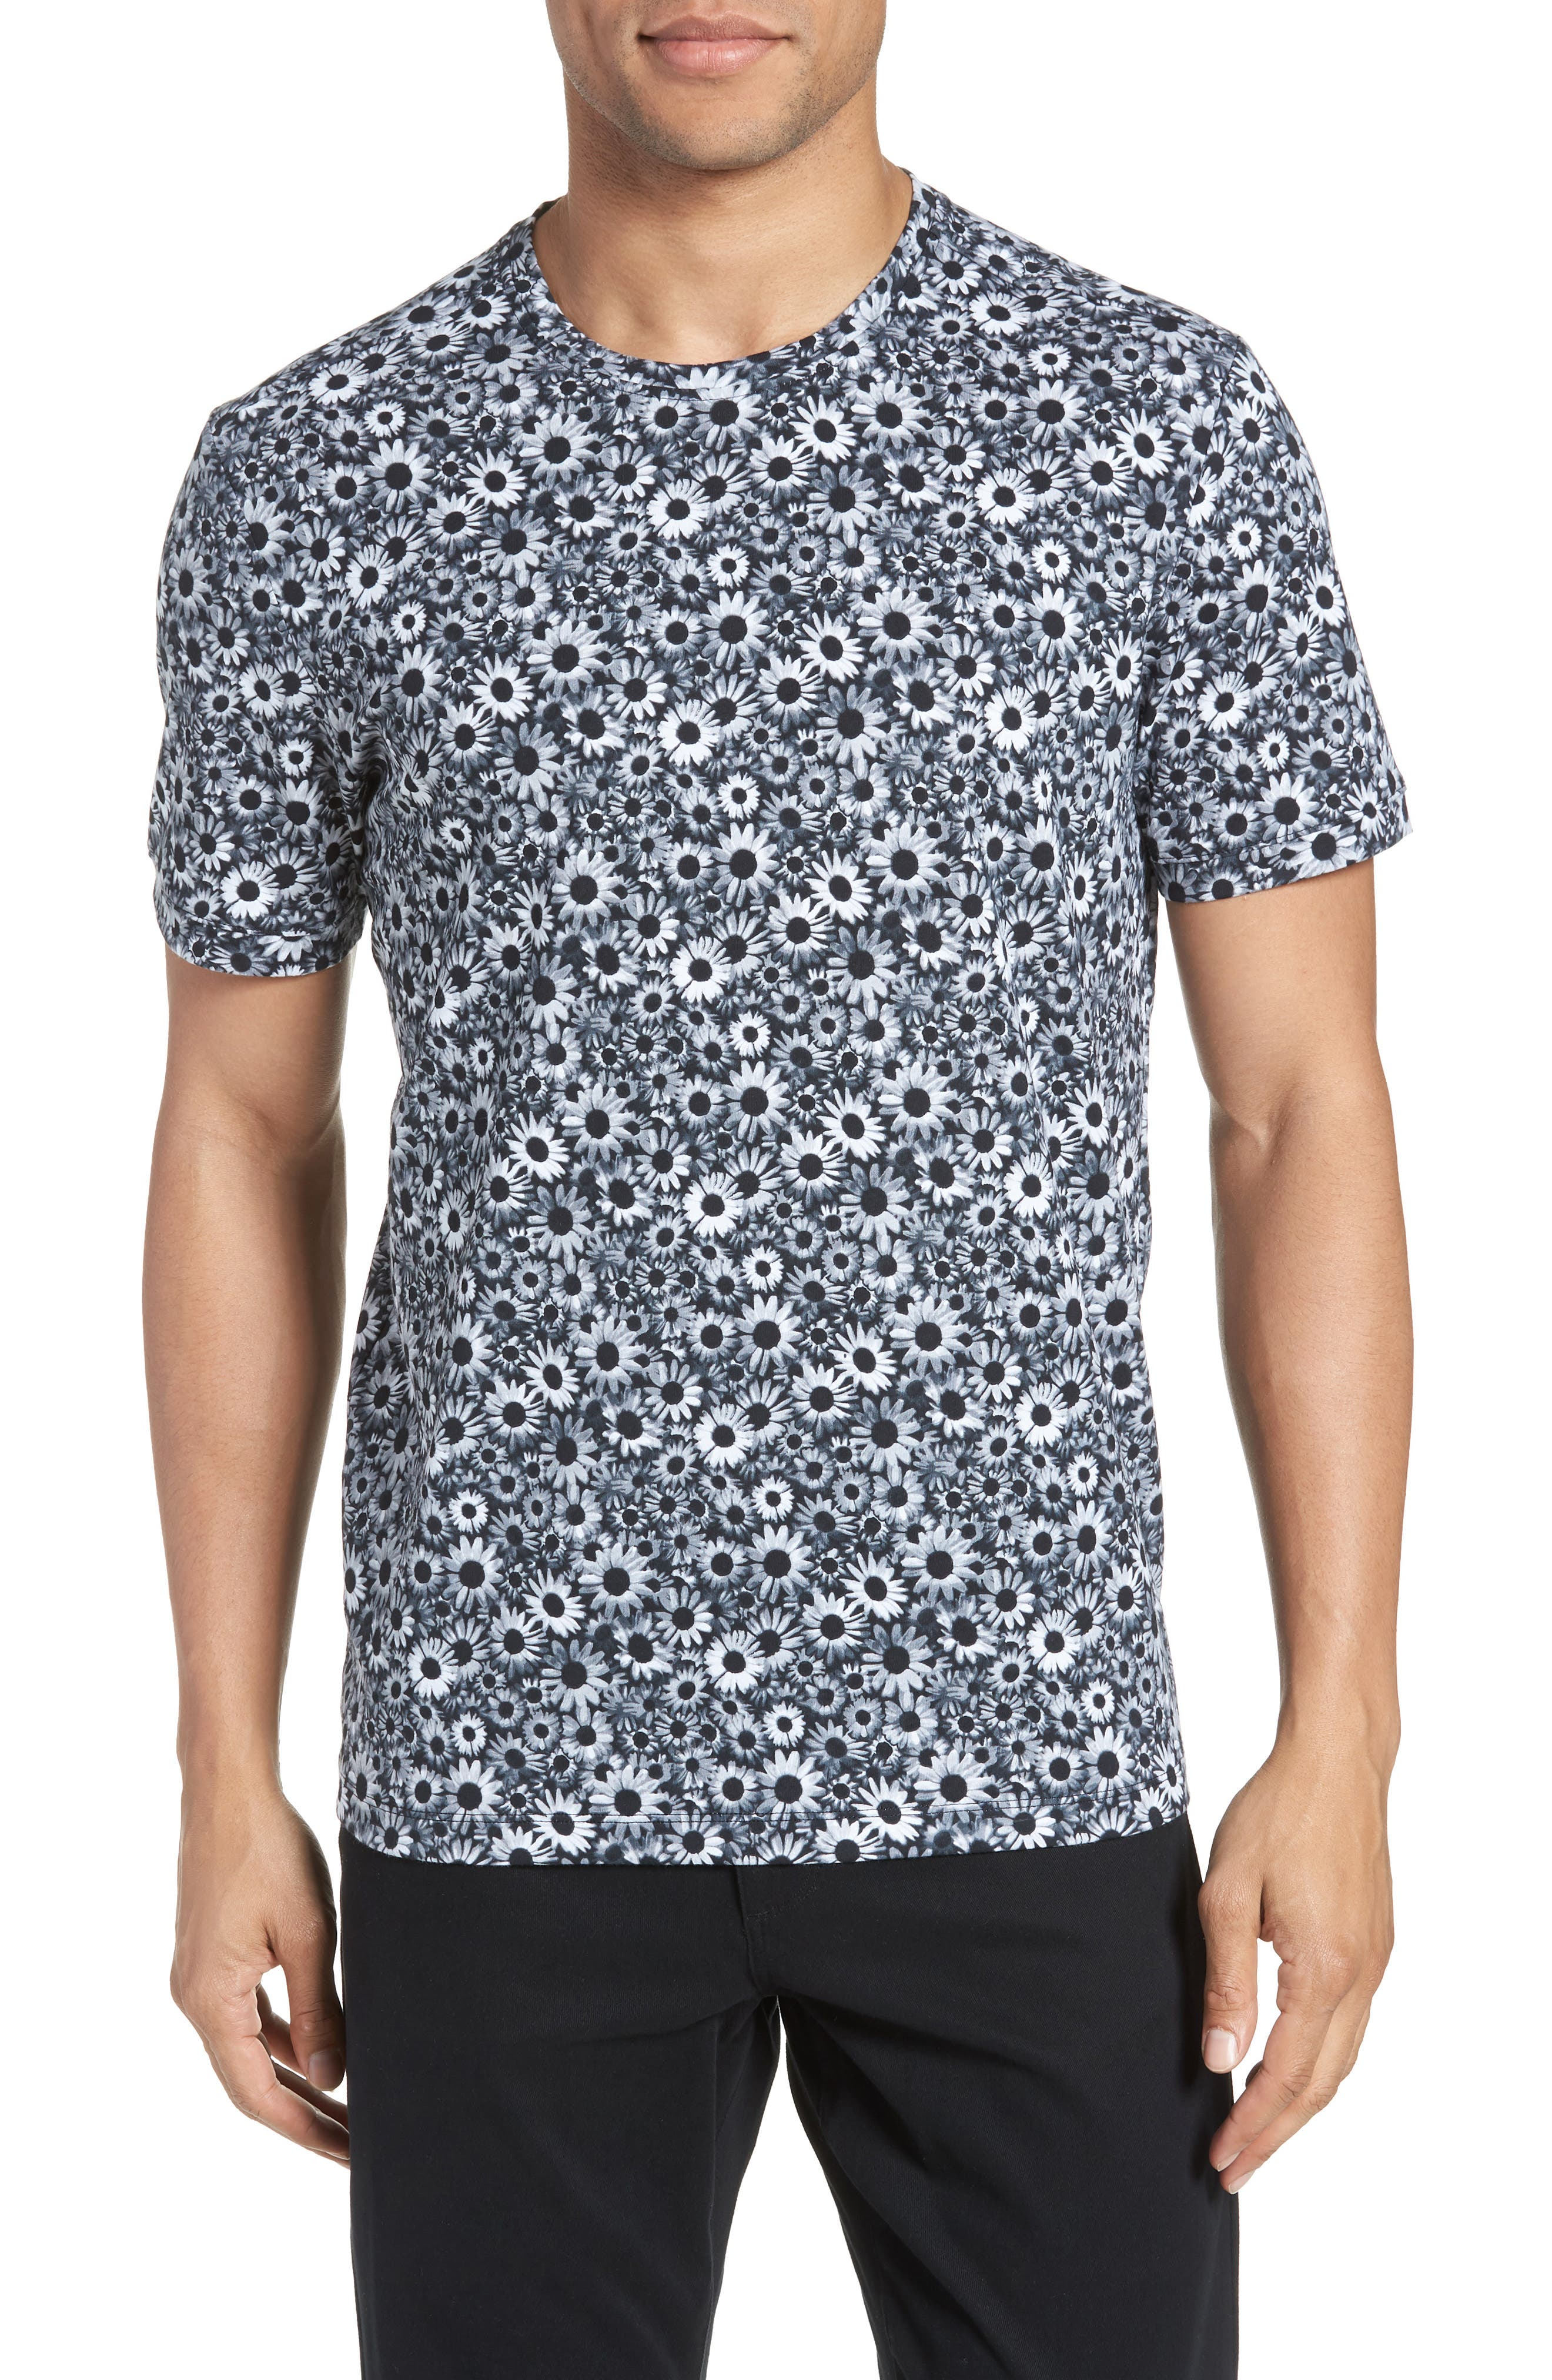 Print T-Shirt,                         Main,                         color, Black White Daisy Floral